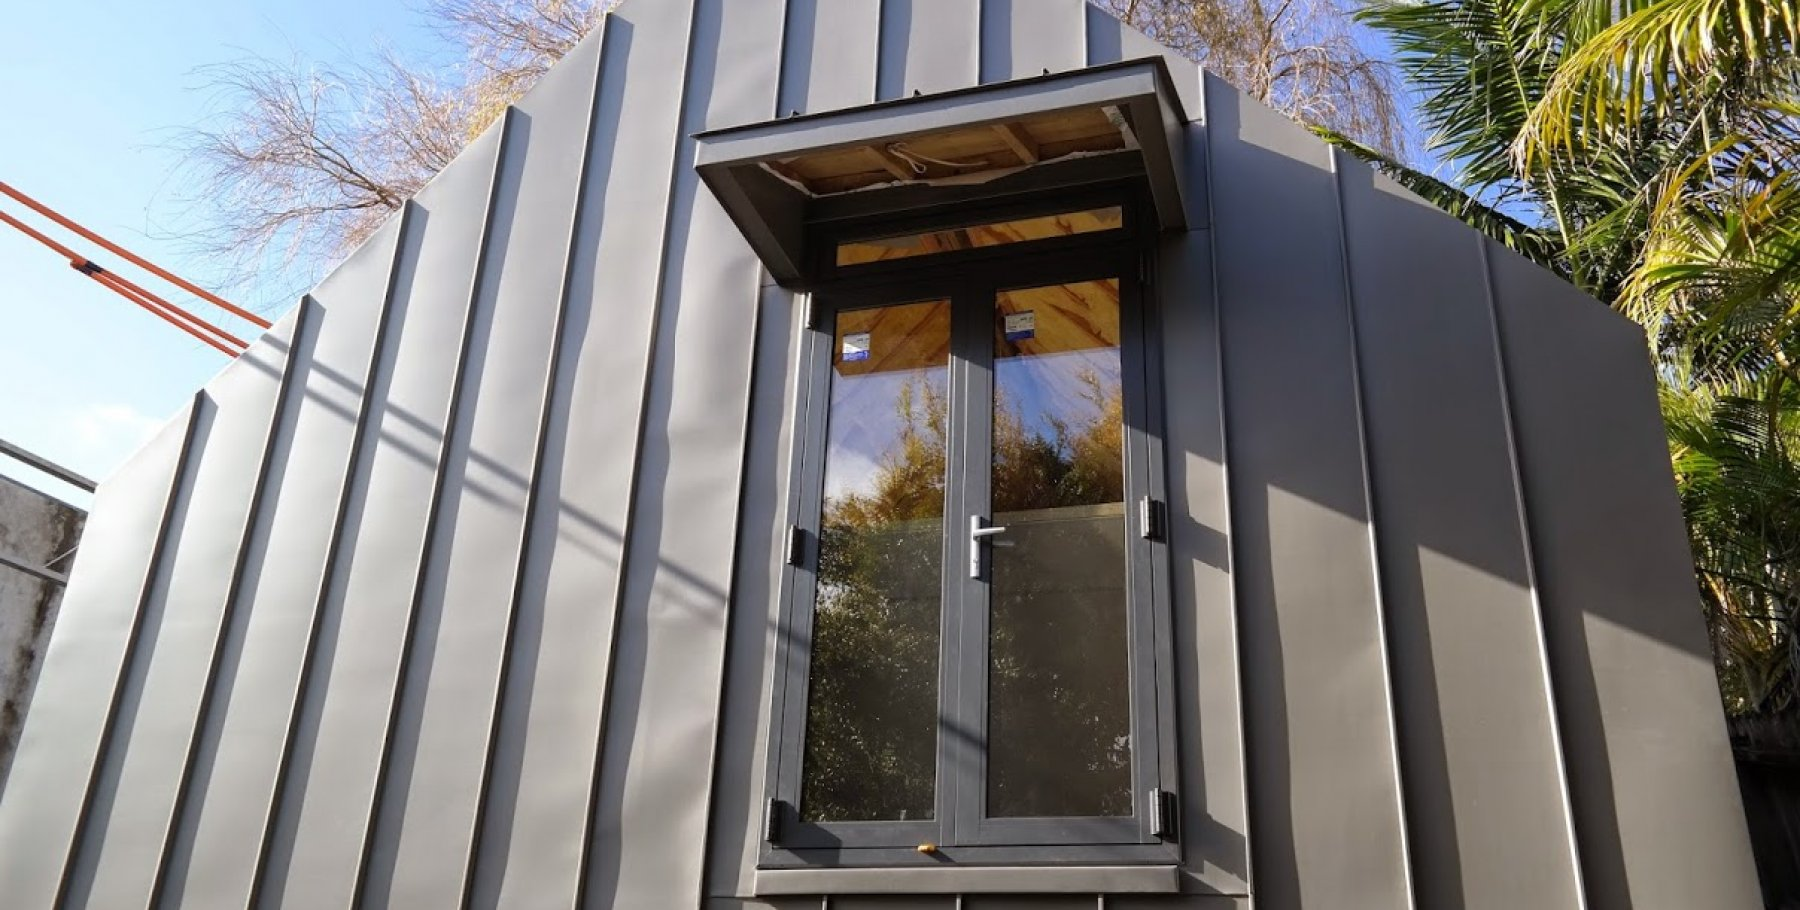 Zinc Cladding By Mds Metal Design Solutions